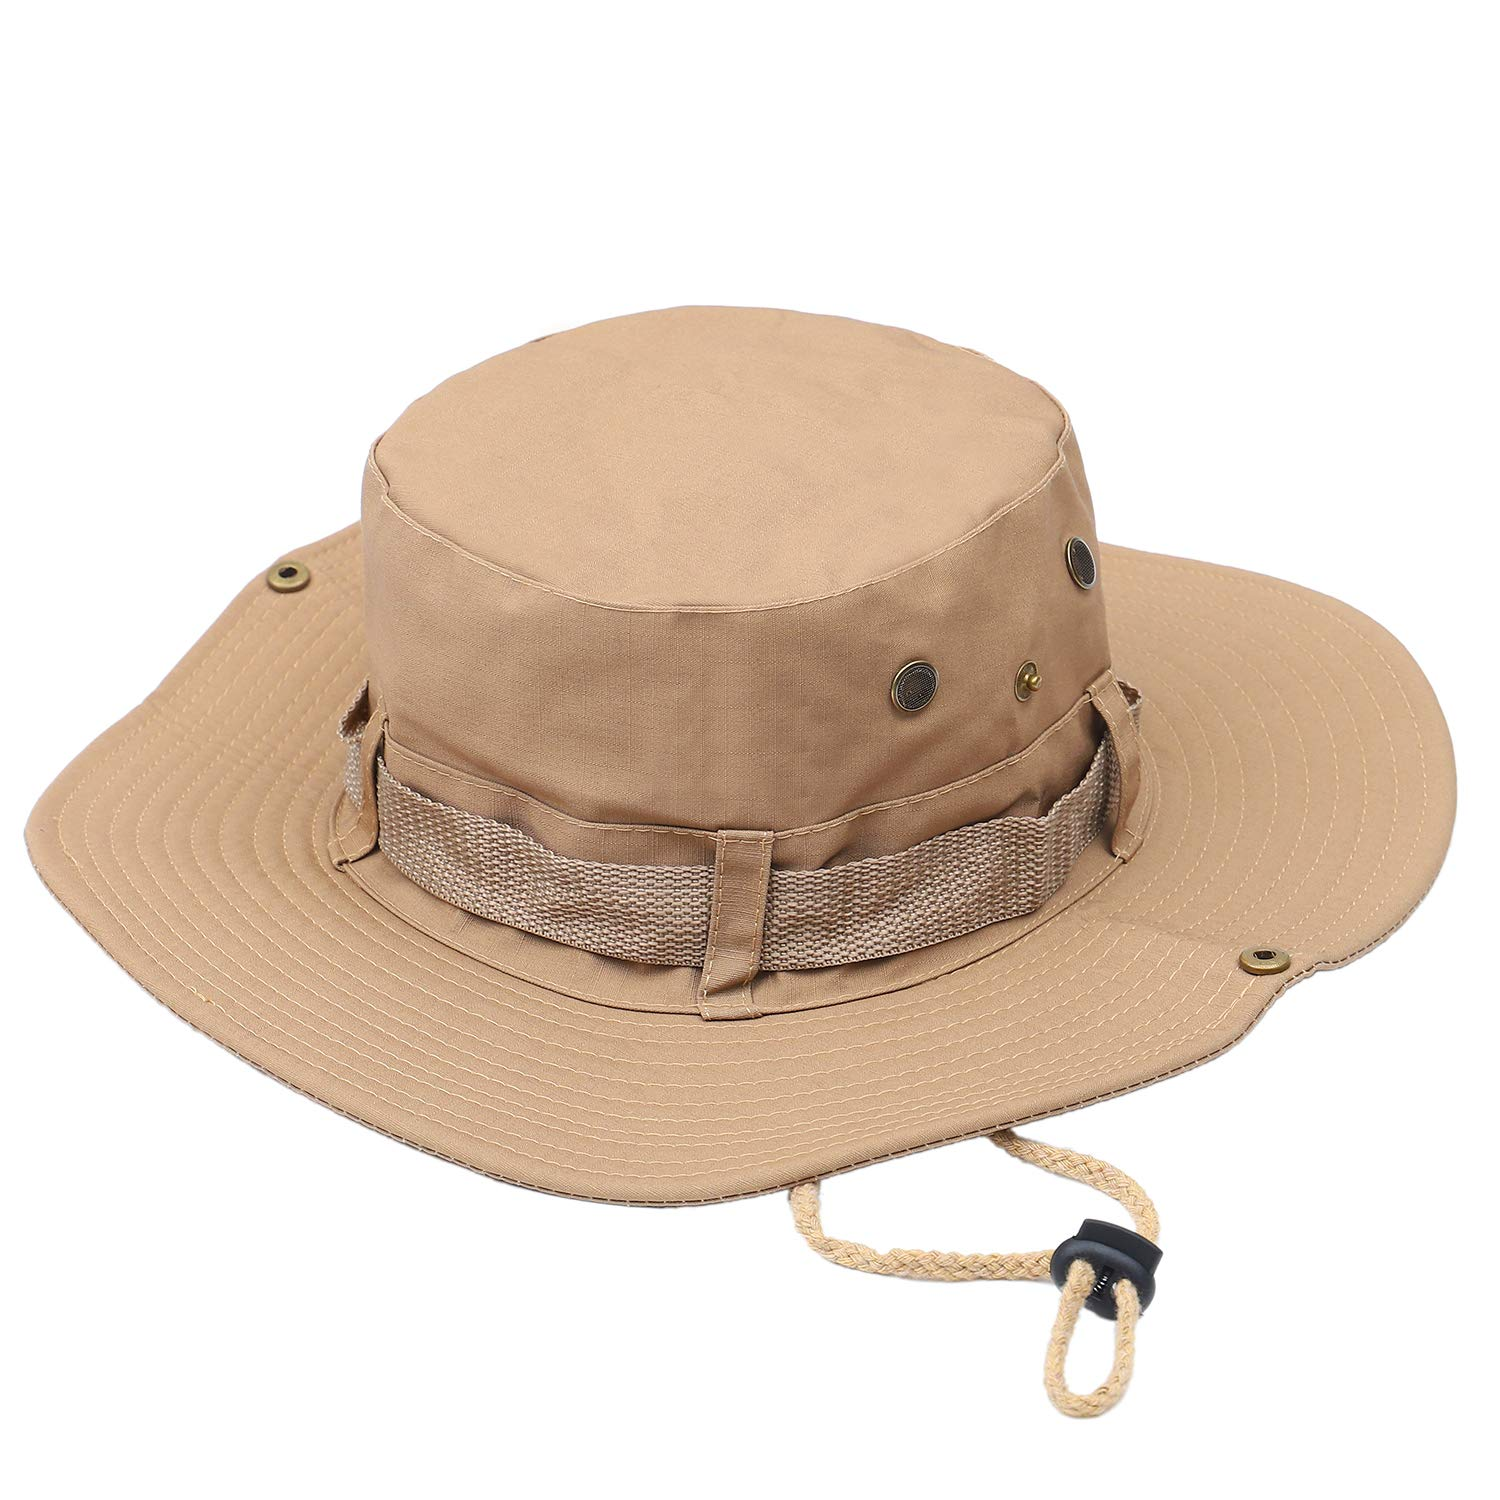 ChukDan Outdoor Wide Brim Breathable Packable Boonie Hat for Men Women, Sun Hat Cap UV Protection Perfect for Camping Fishing Gardening Hiking Travelling